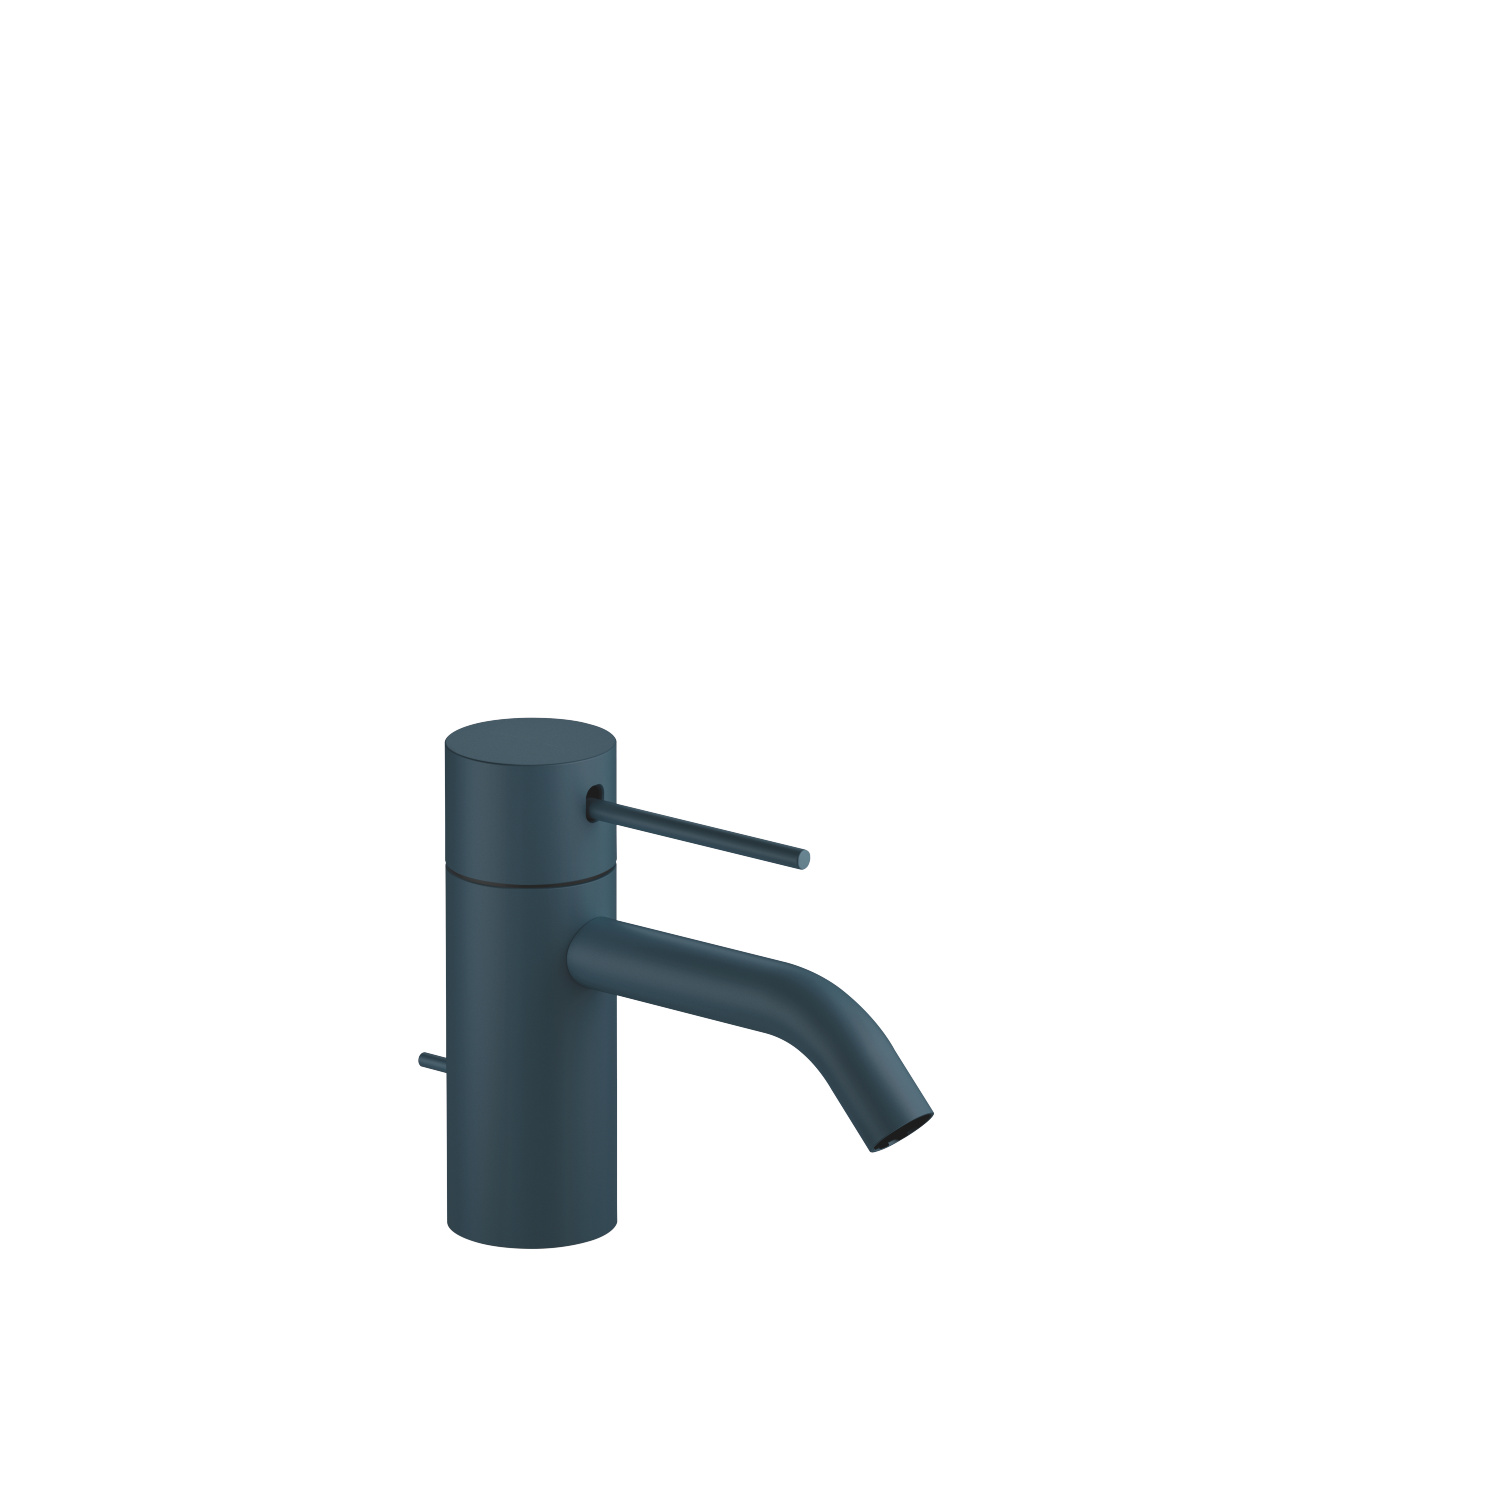 META SLIM Single-lever basin mixer with pop-up waste - grey blue